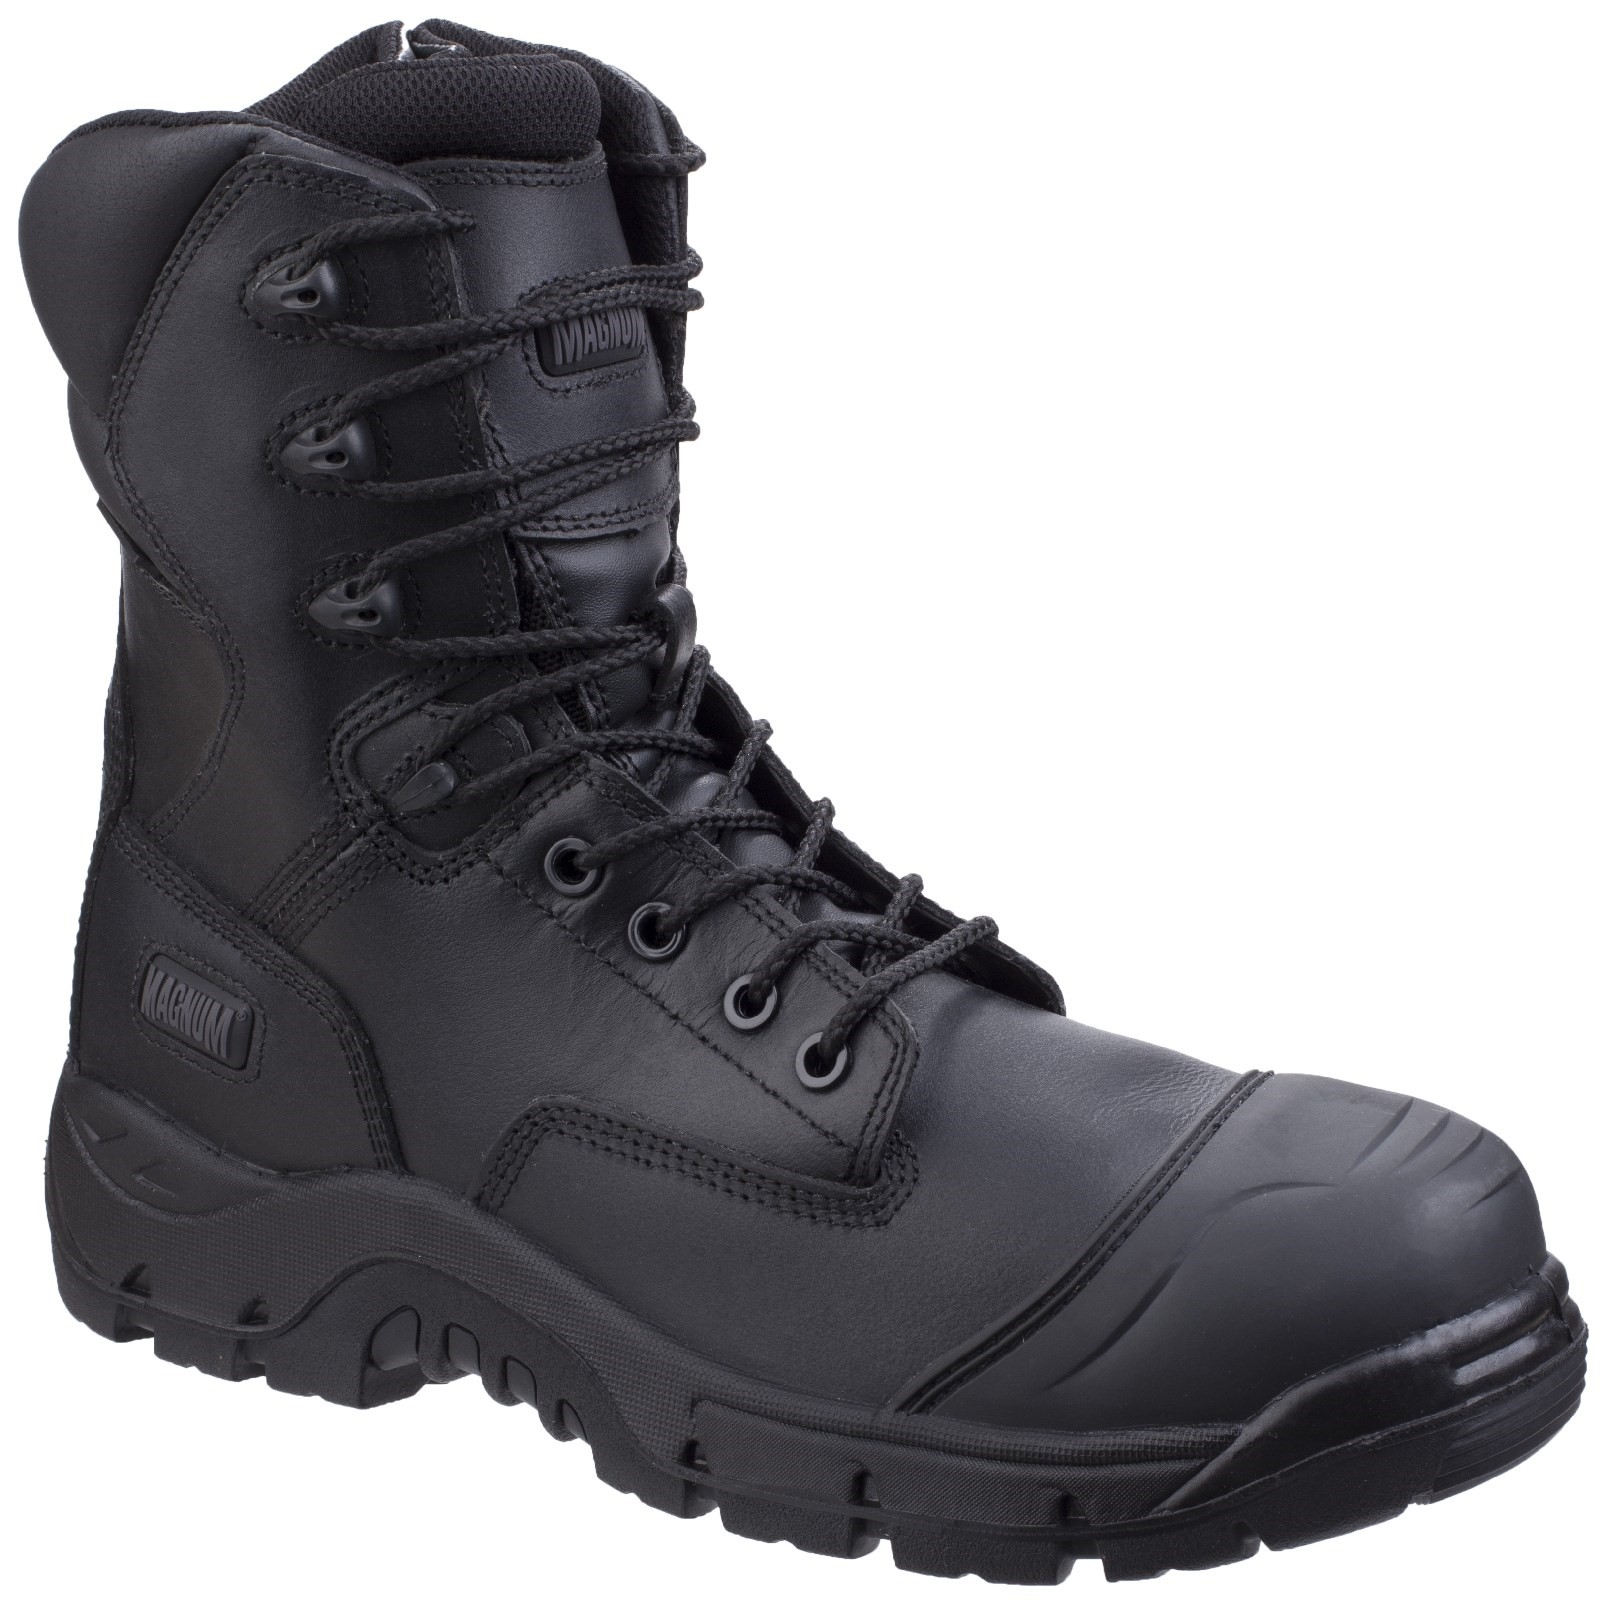 Magnum M801365 Rigmaster Safety Boots